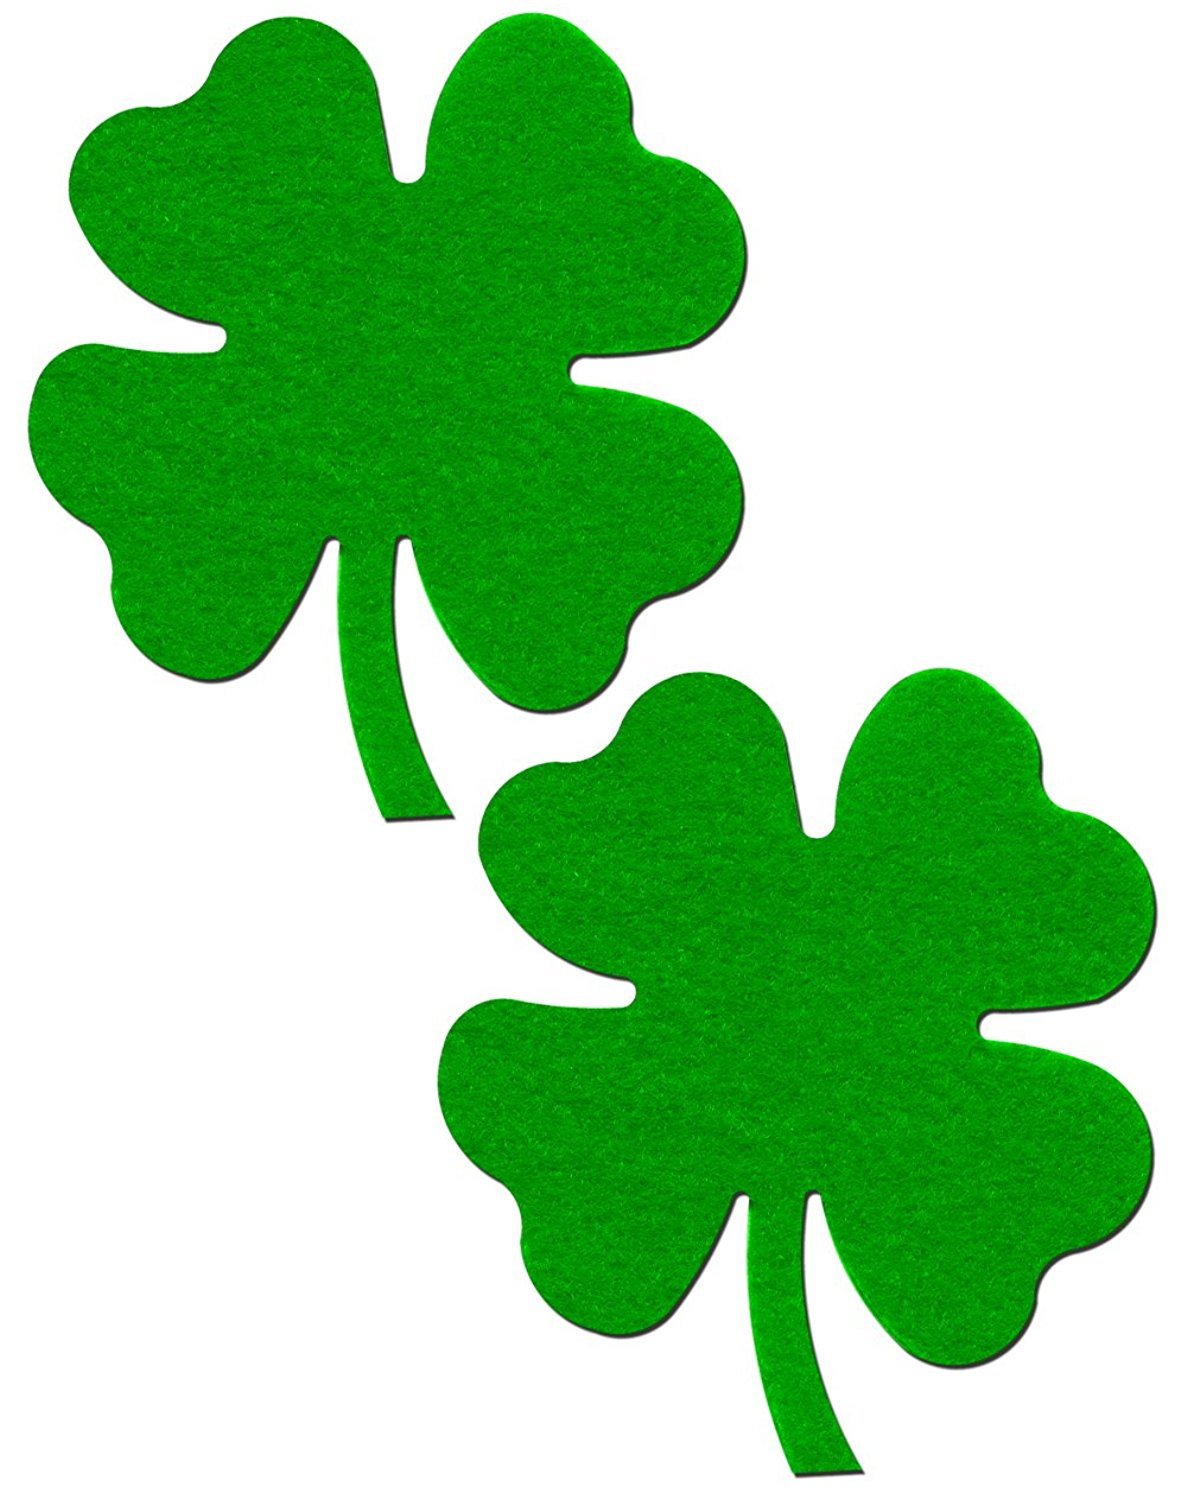 Three at getdrawings com. Irish clipart four leaf clover clip art freeuse download